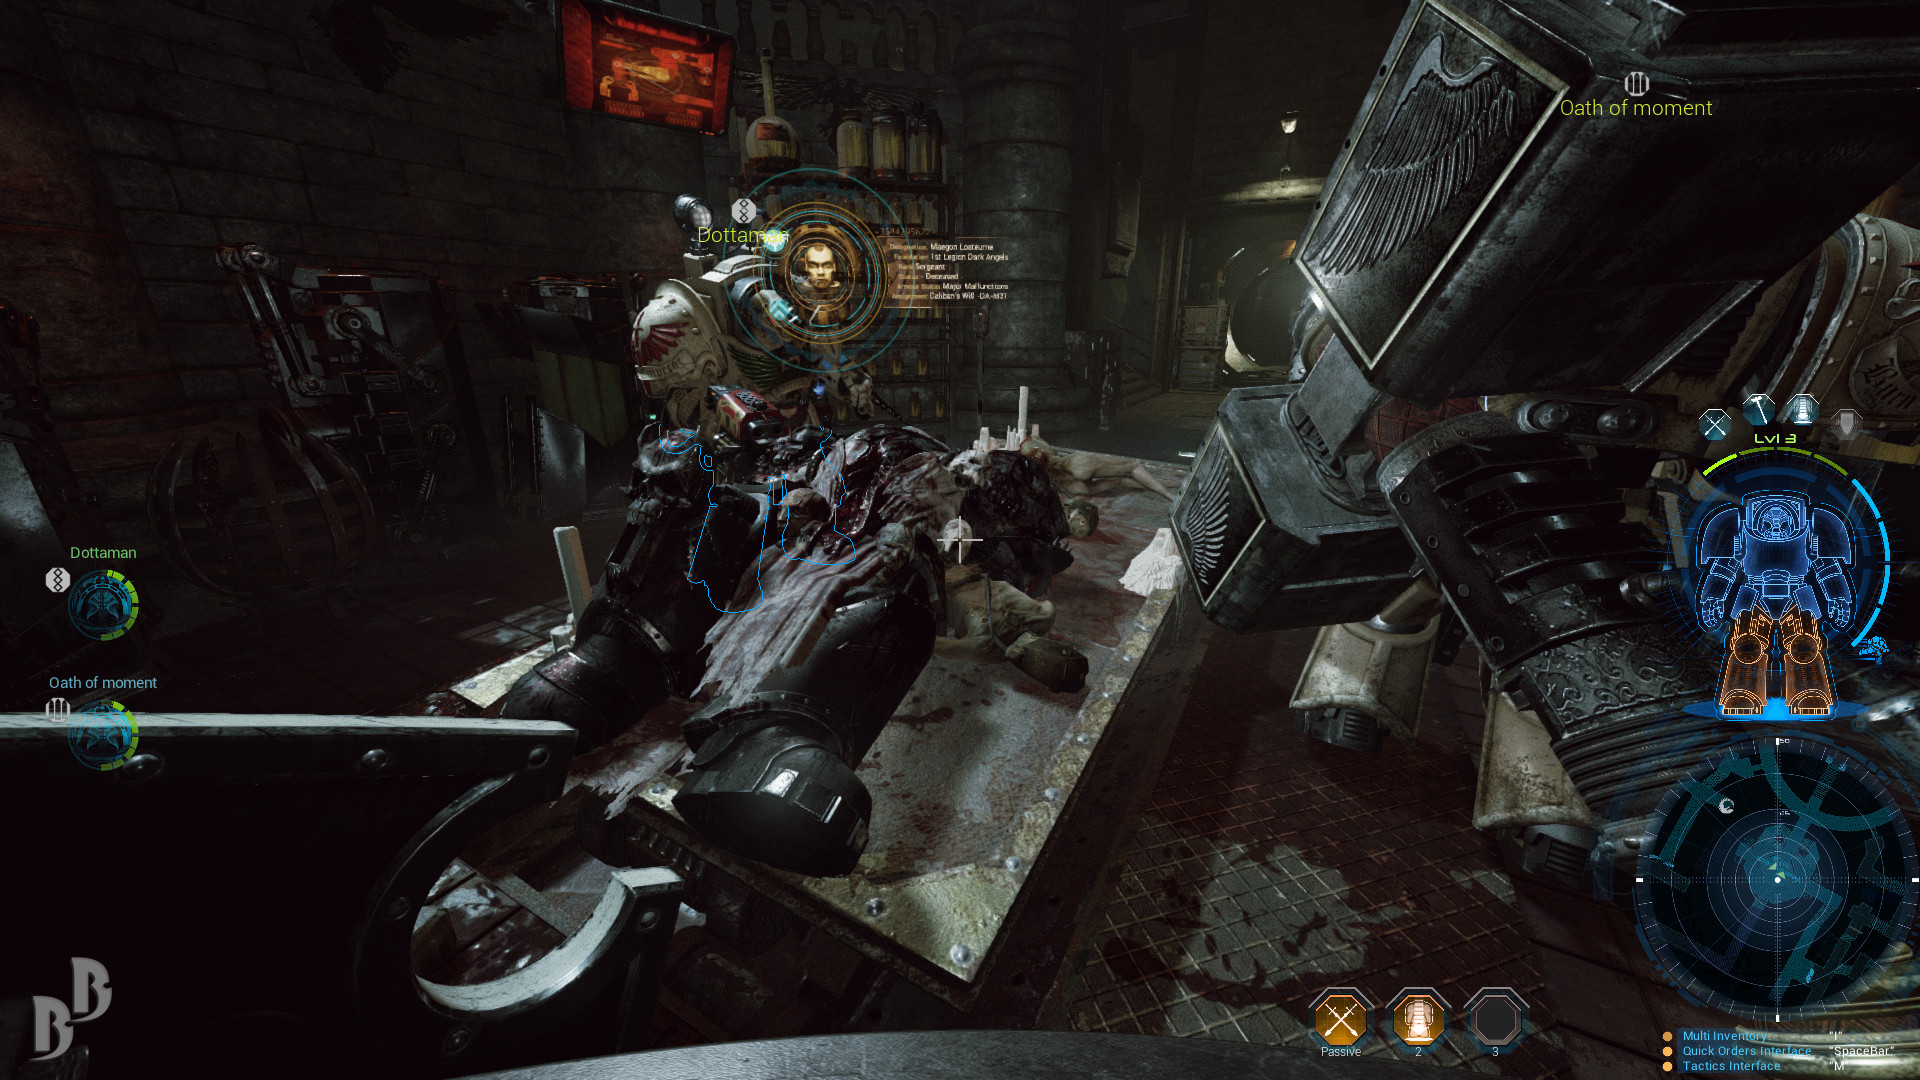 Space Hulk Deathwing Review - Battle Brothers